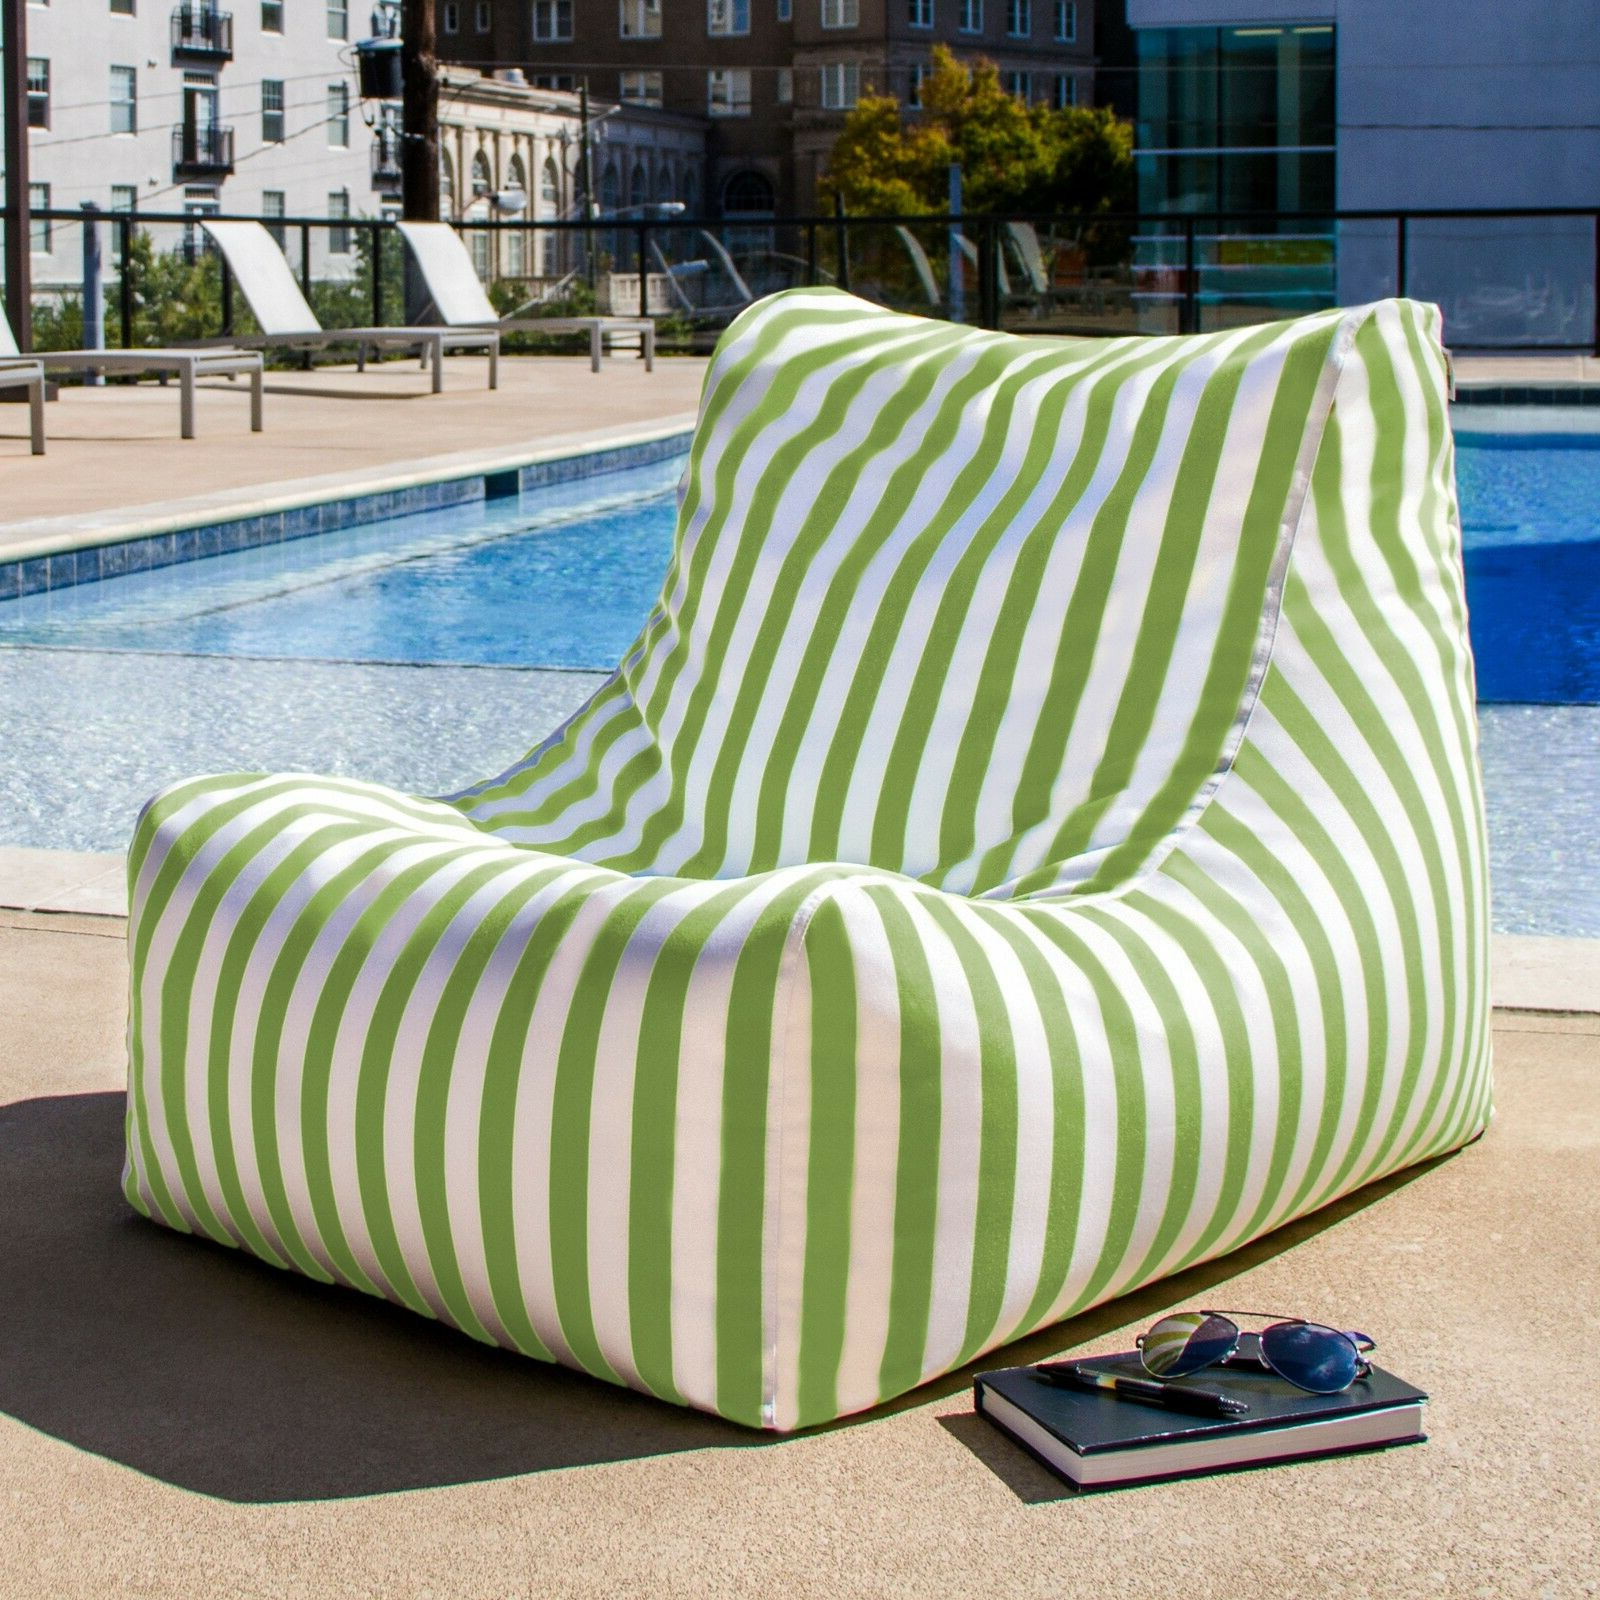 Most Recent Jaxx Ponce Outdoor Bean Bag Patio Chairs For Jaxx Ponce Outdoor Bean Bag Lounge Chair (Gallery 9 of 25)